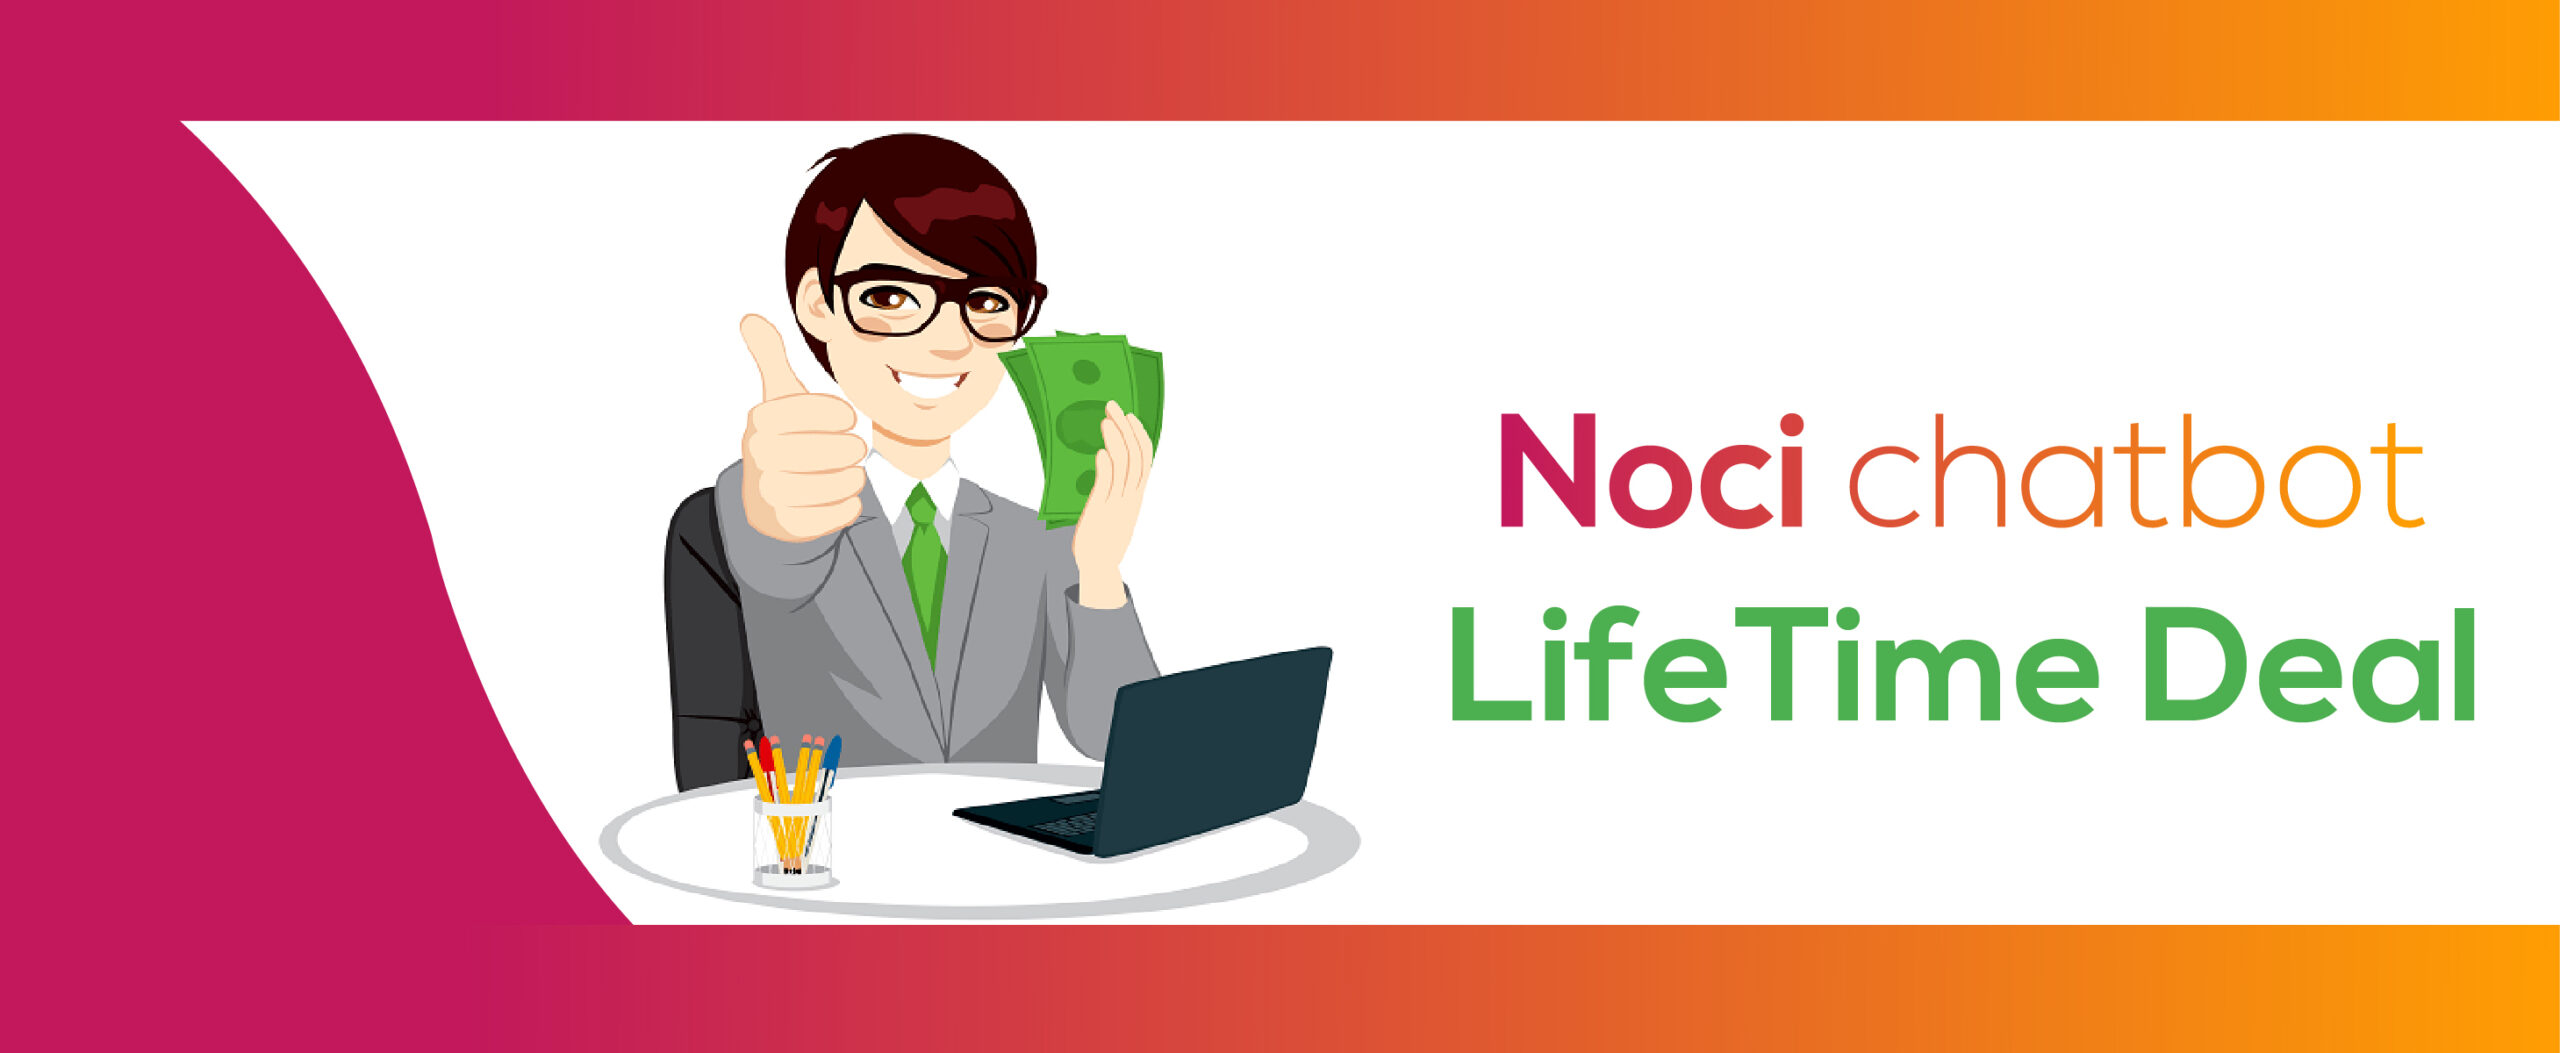 Nochi life time deal scaled